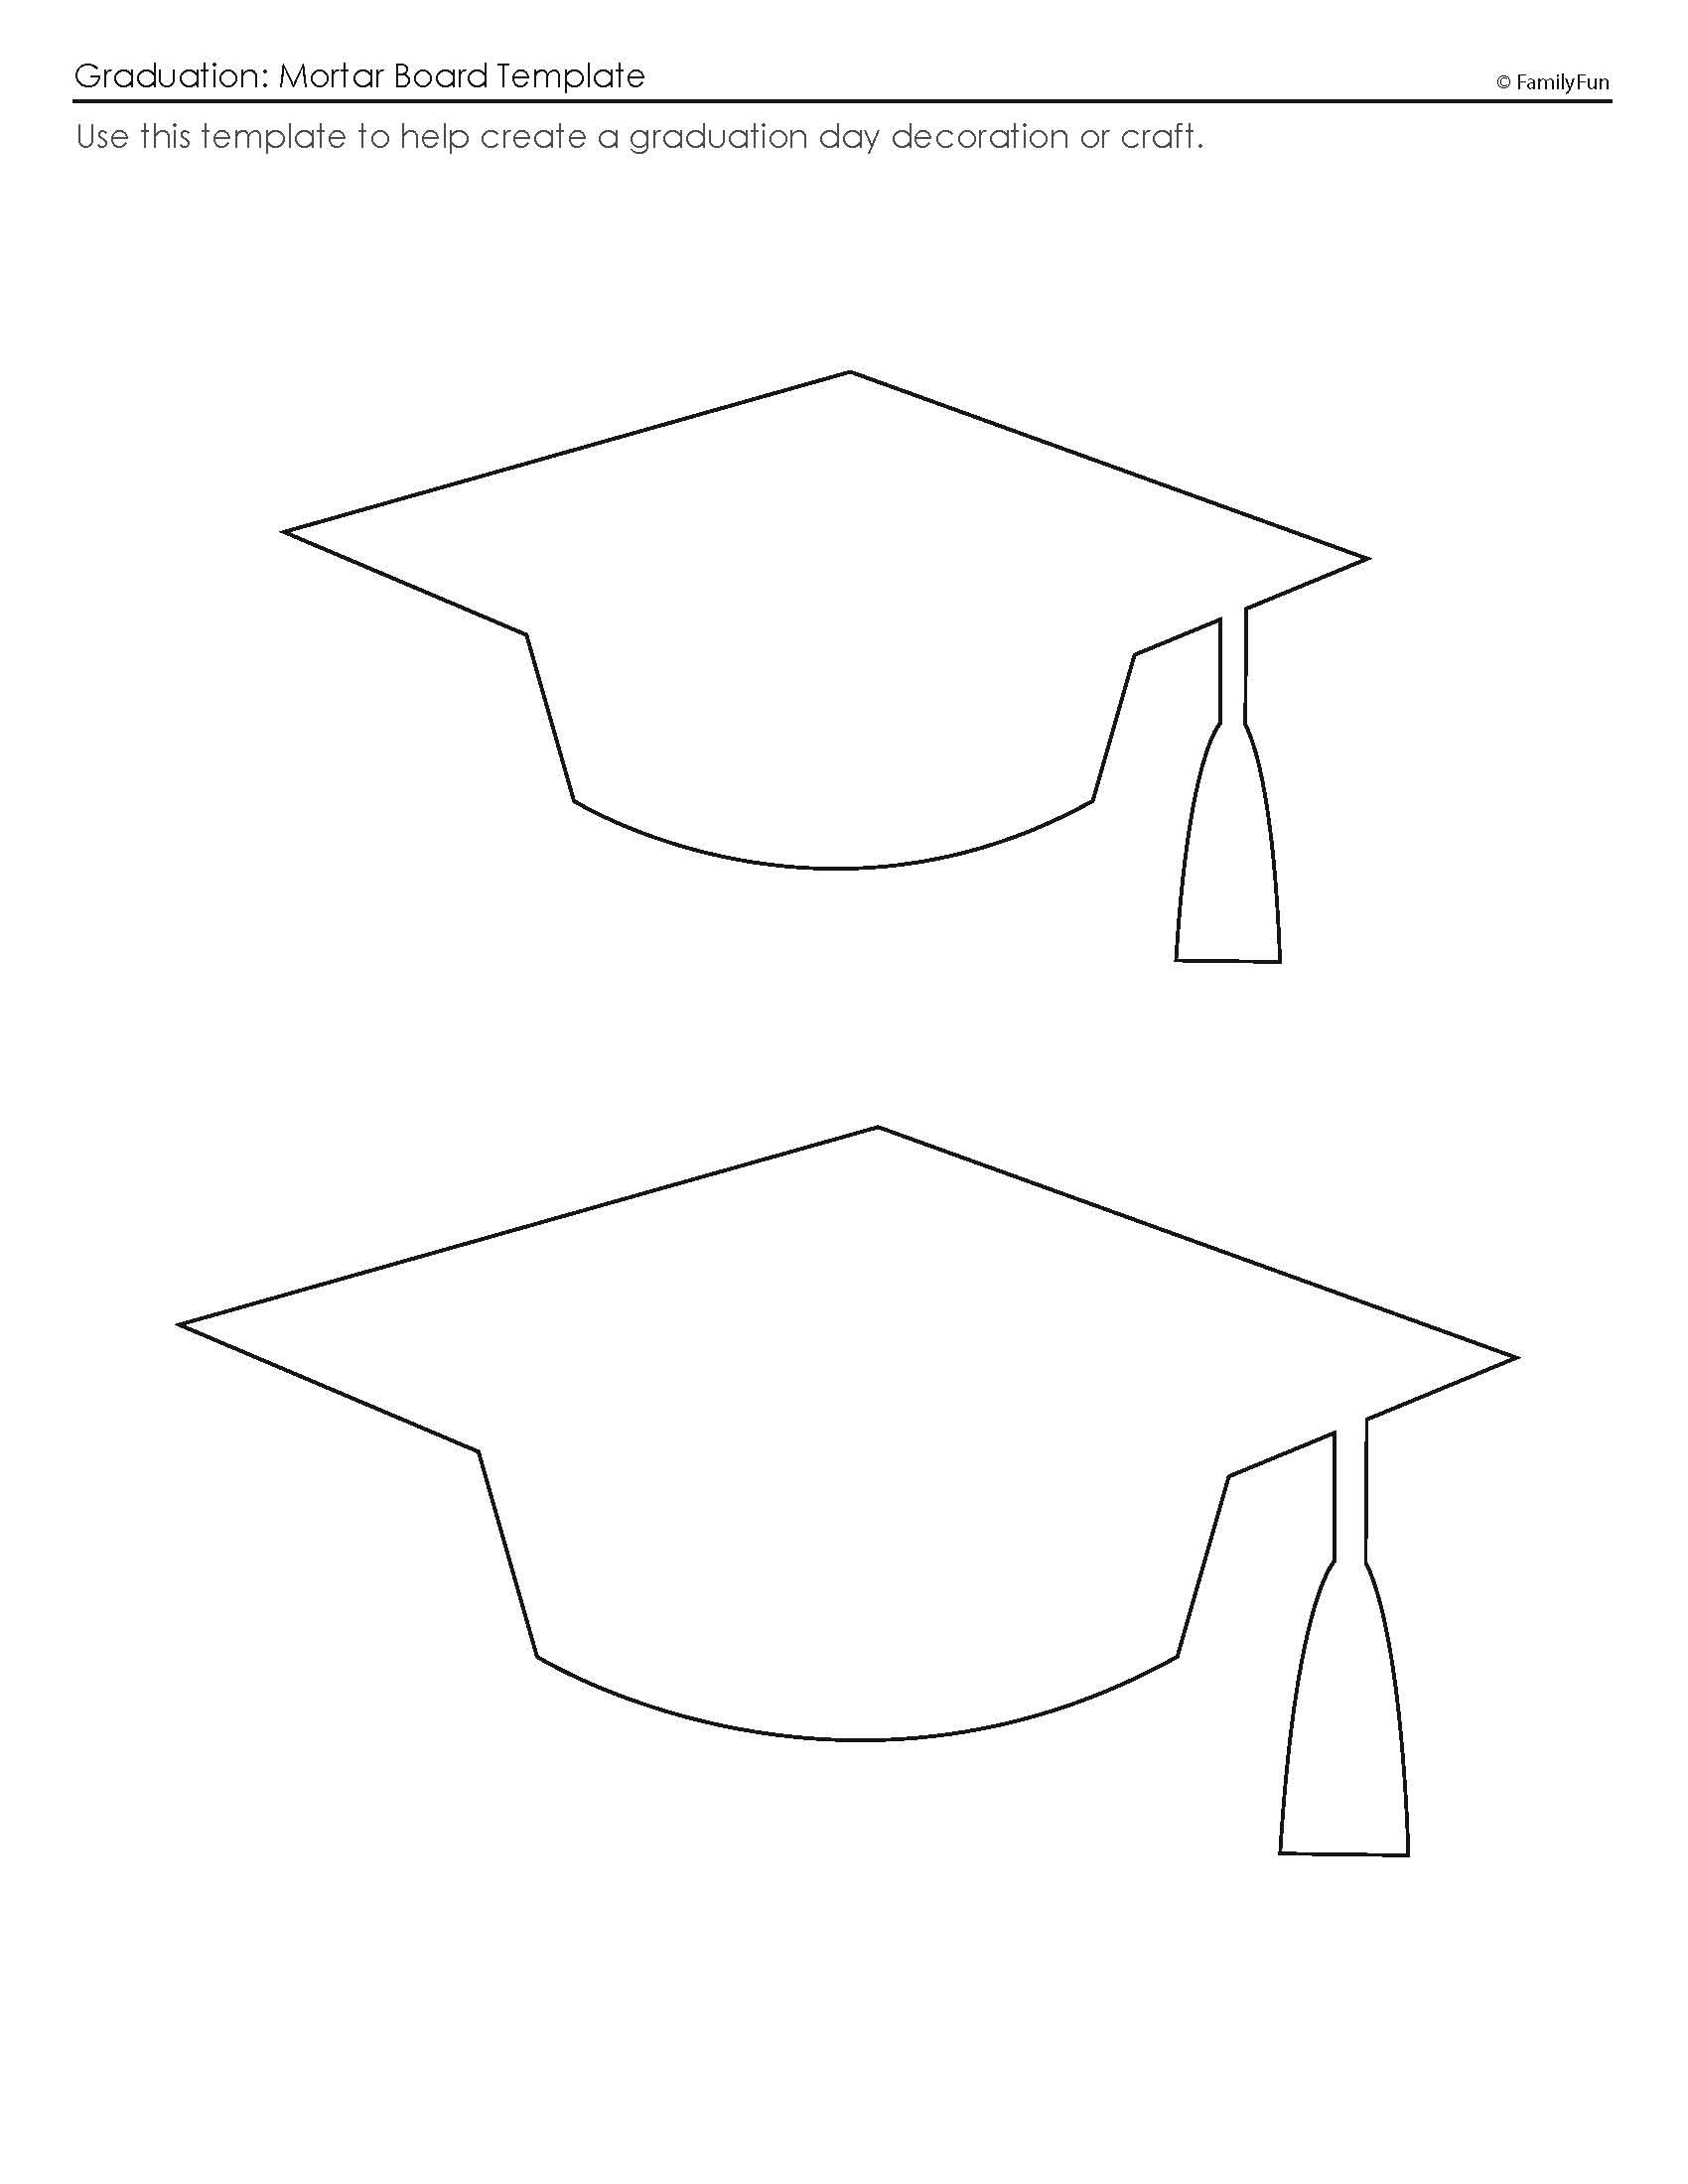 Customize your free printable mortar board template for Graduation mortar board template